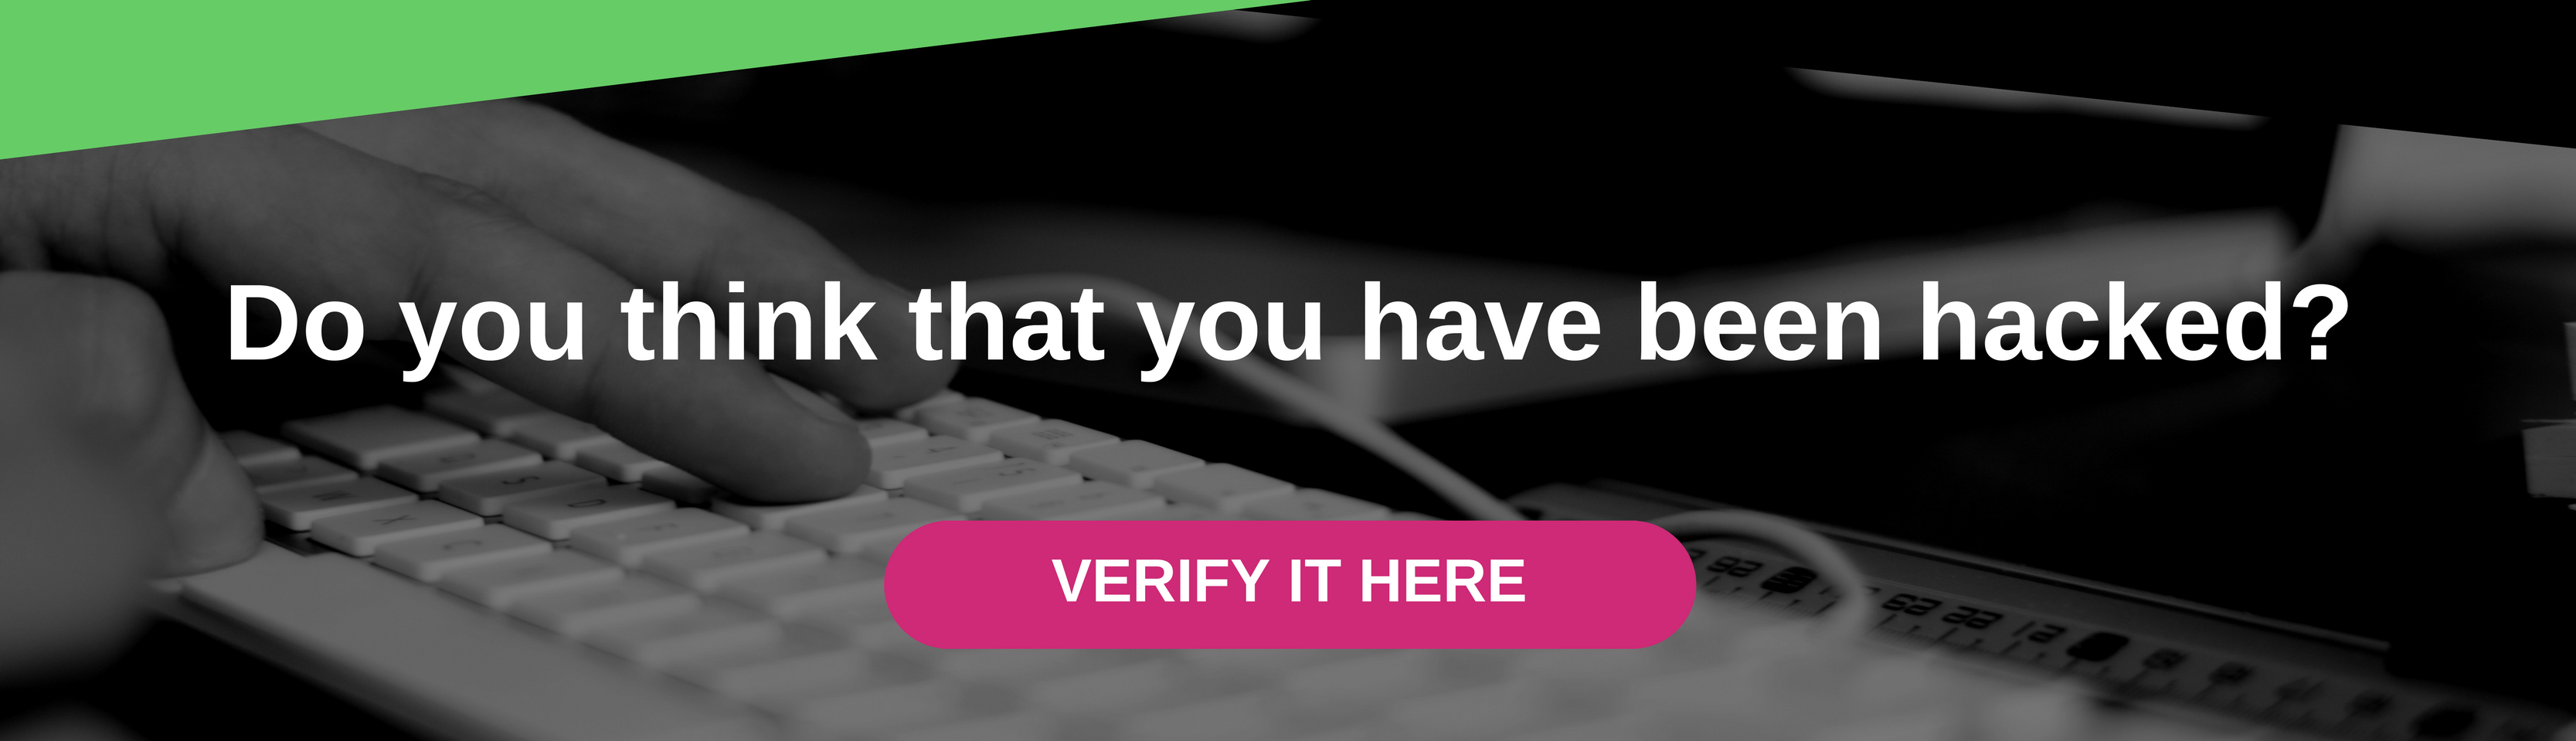 Do you think that you have been hacked? Verify it here